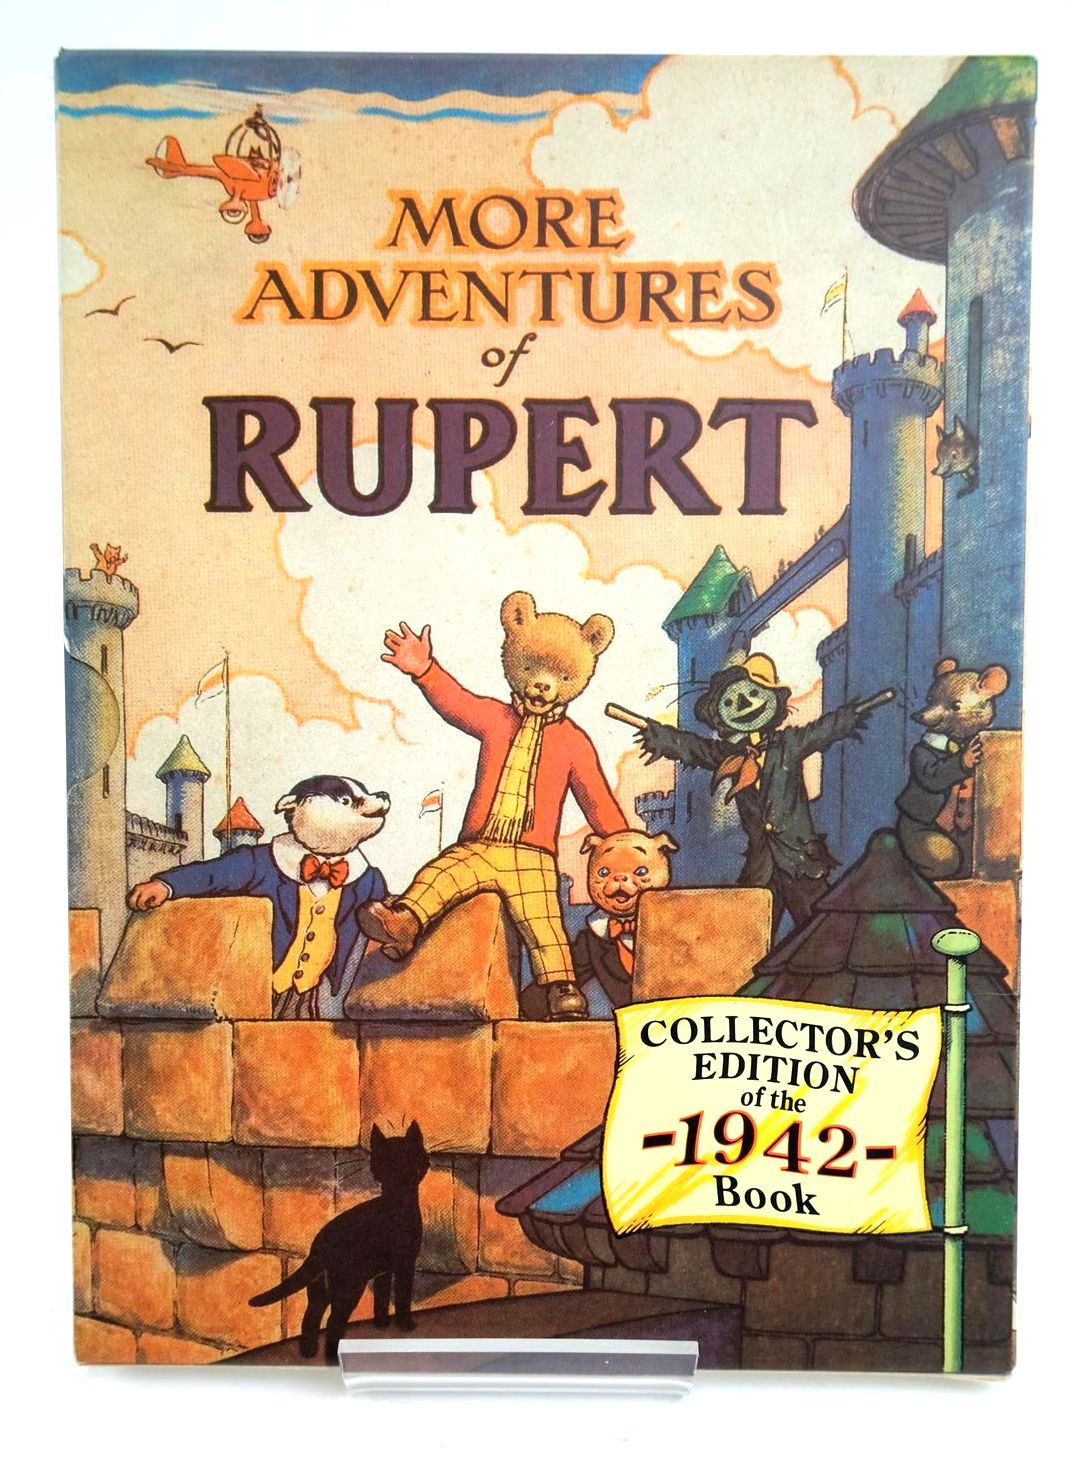 Photo of RUPERT ANNUAL 1942 (FACSIMILE) - MORE ADVENTURES OF RUPERT written by Bestall, Alfred illustrated by Bestall, Alfred published by Pedigree Books Limited (STOCK CODE: 1319479)  for sale by Stella & Rose's Books